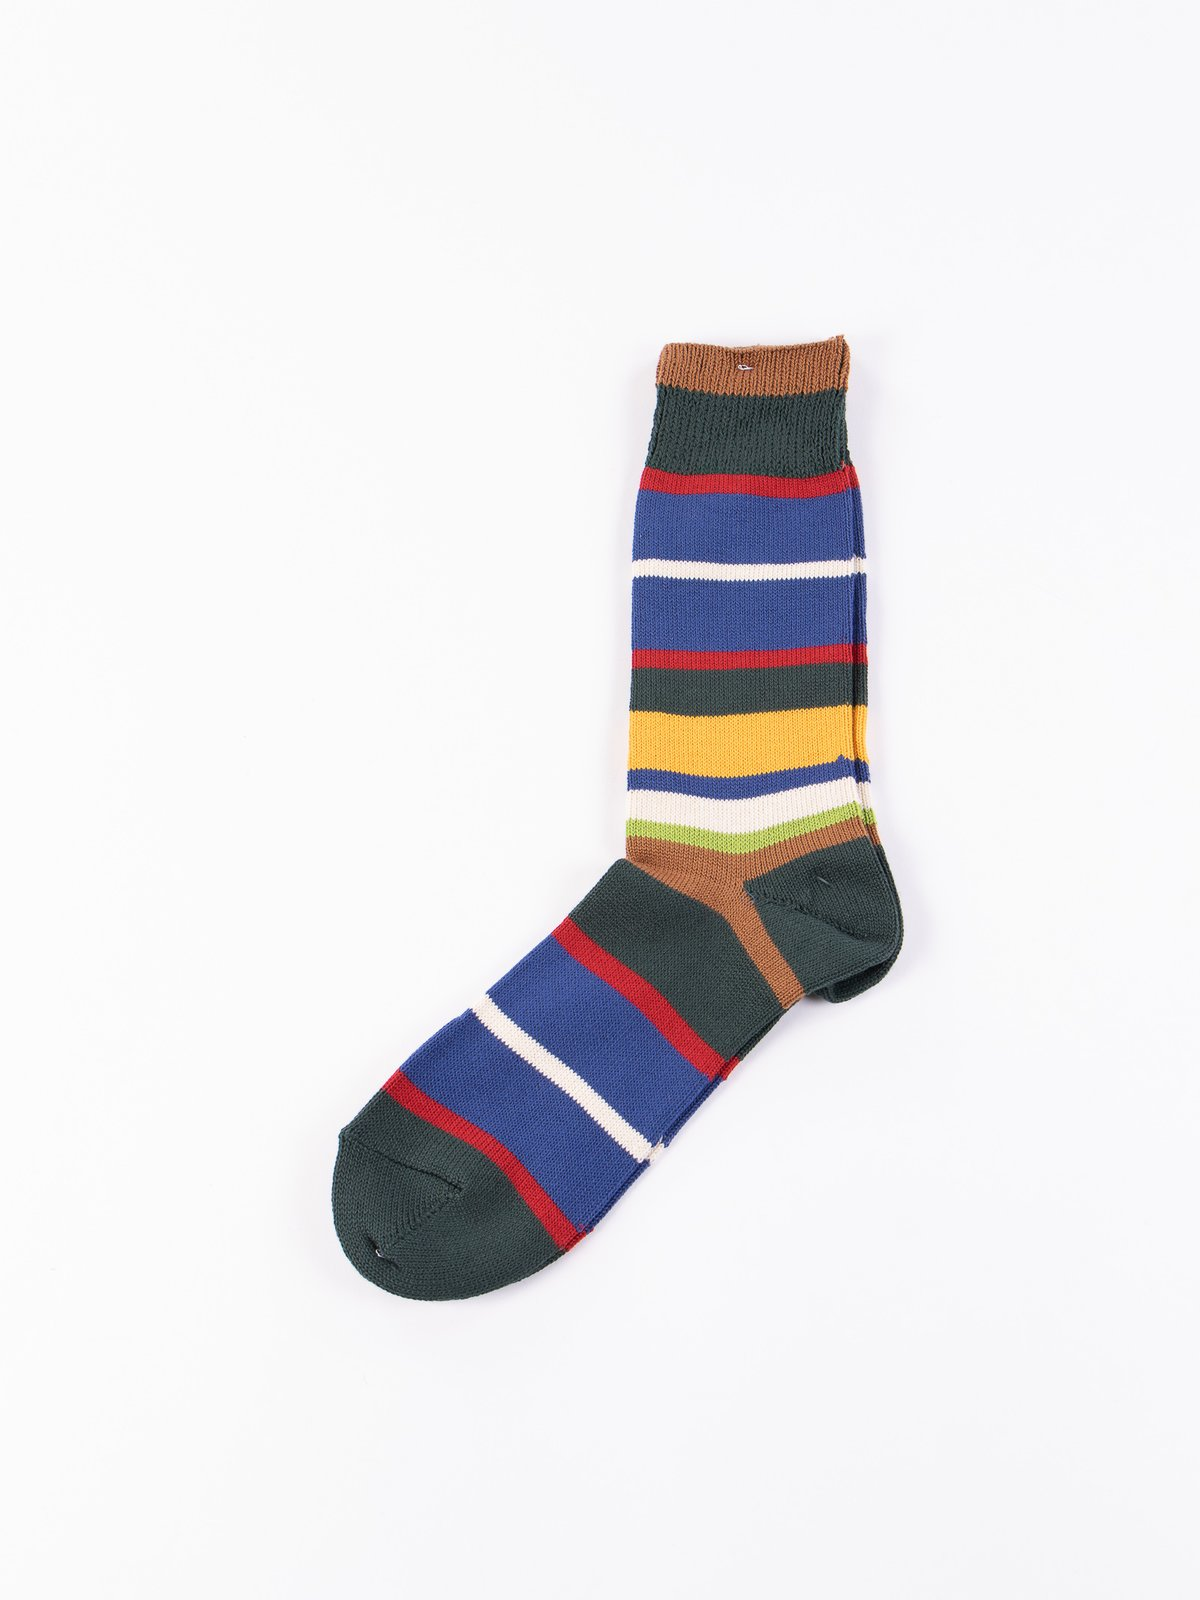 Moss Multi Stripe Crew Socks - Image 1